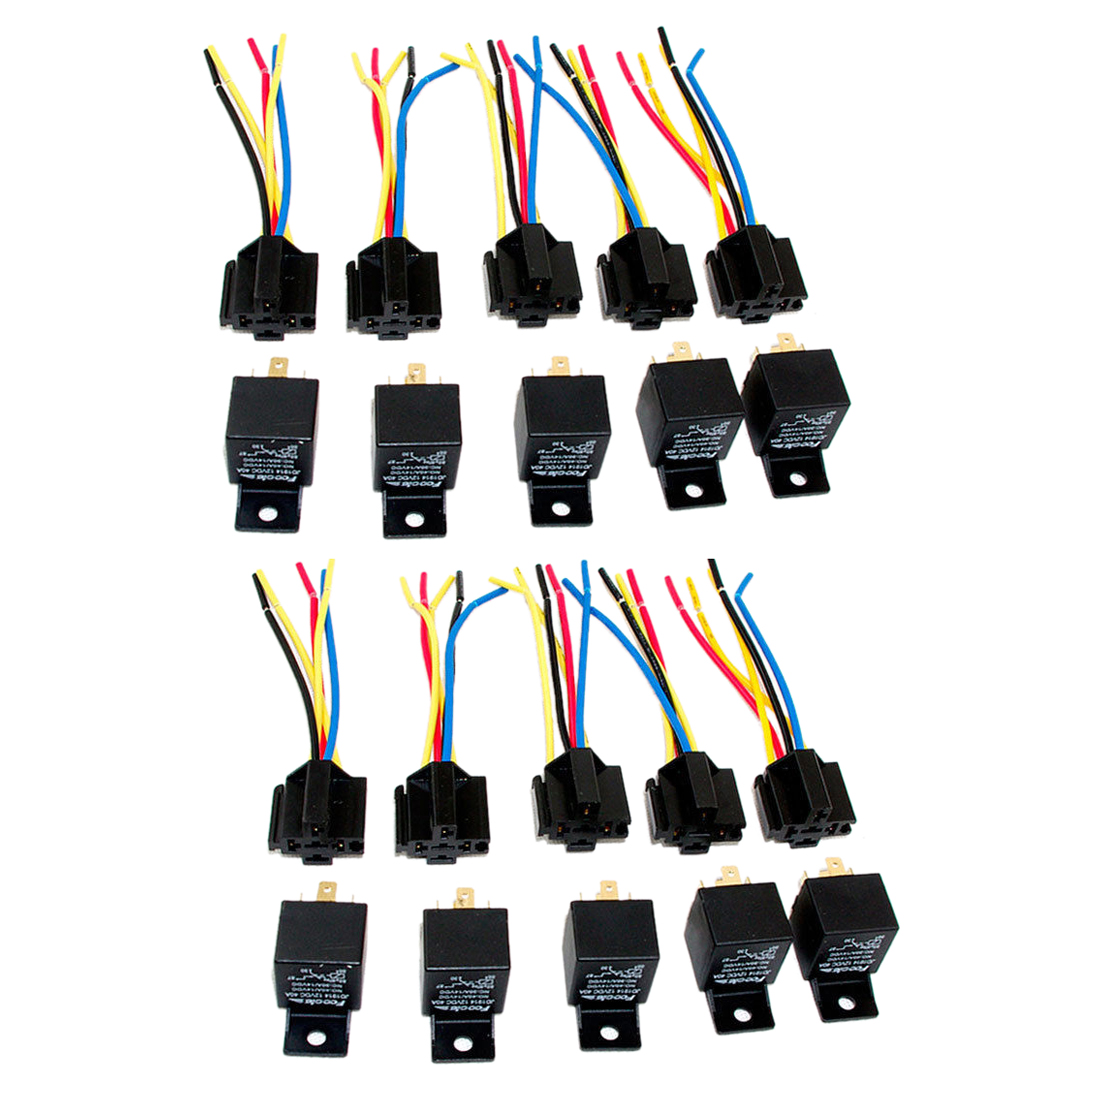 Lot10 New 12 Volt 40 Amp SPDT Automotive Relay with Wires & Harness Socket lot5 new 12 volt 30 40 amp spdt automotive relay with wires